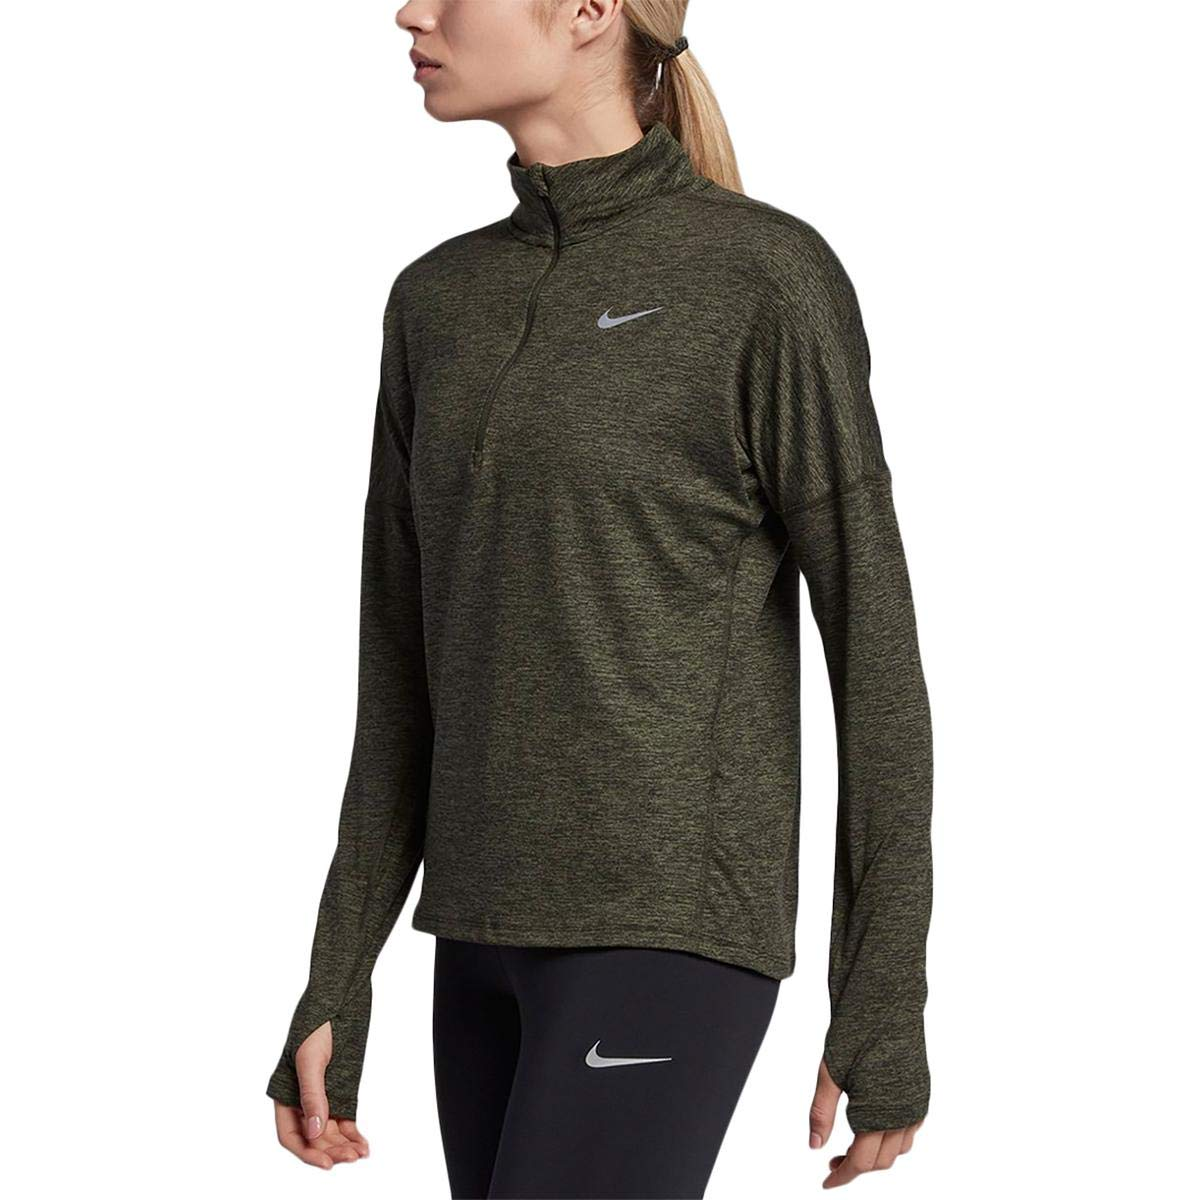 8b6fea9943b039 Nike Womens Element Running Workout 1 4 Zip Pullover Green XS at Amazon  Women s Clothing store